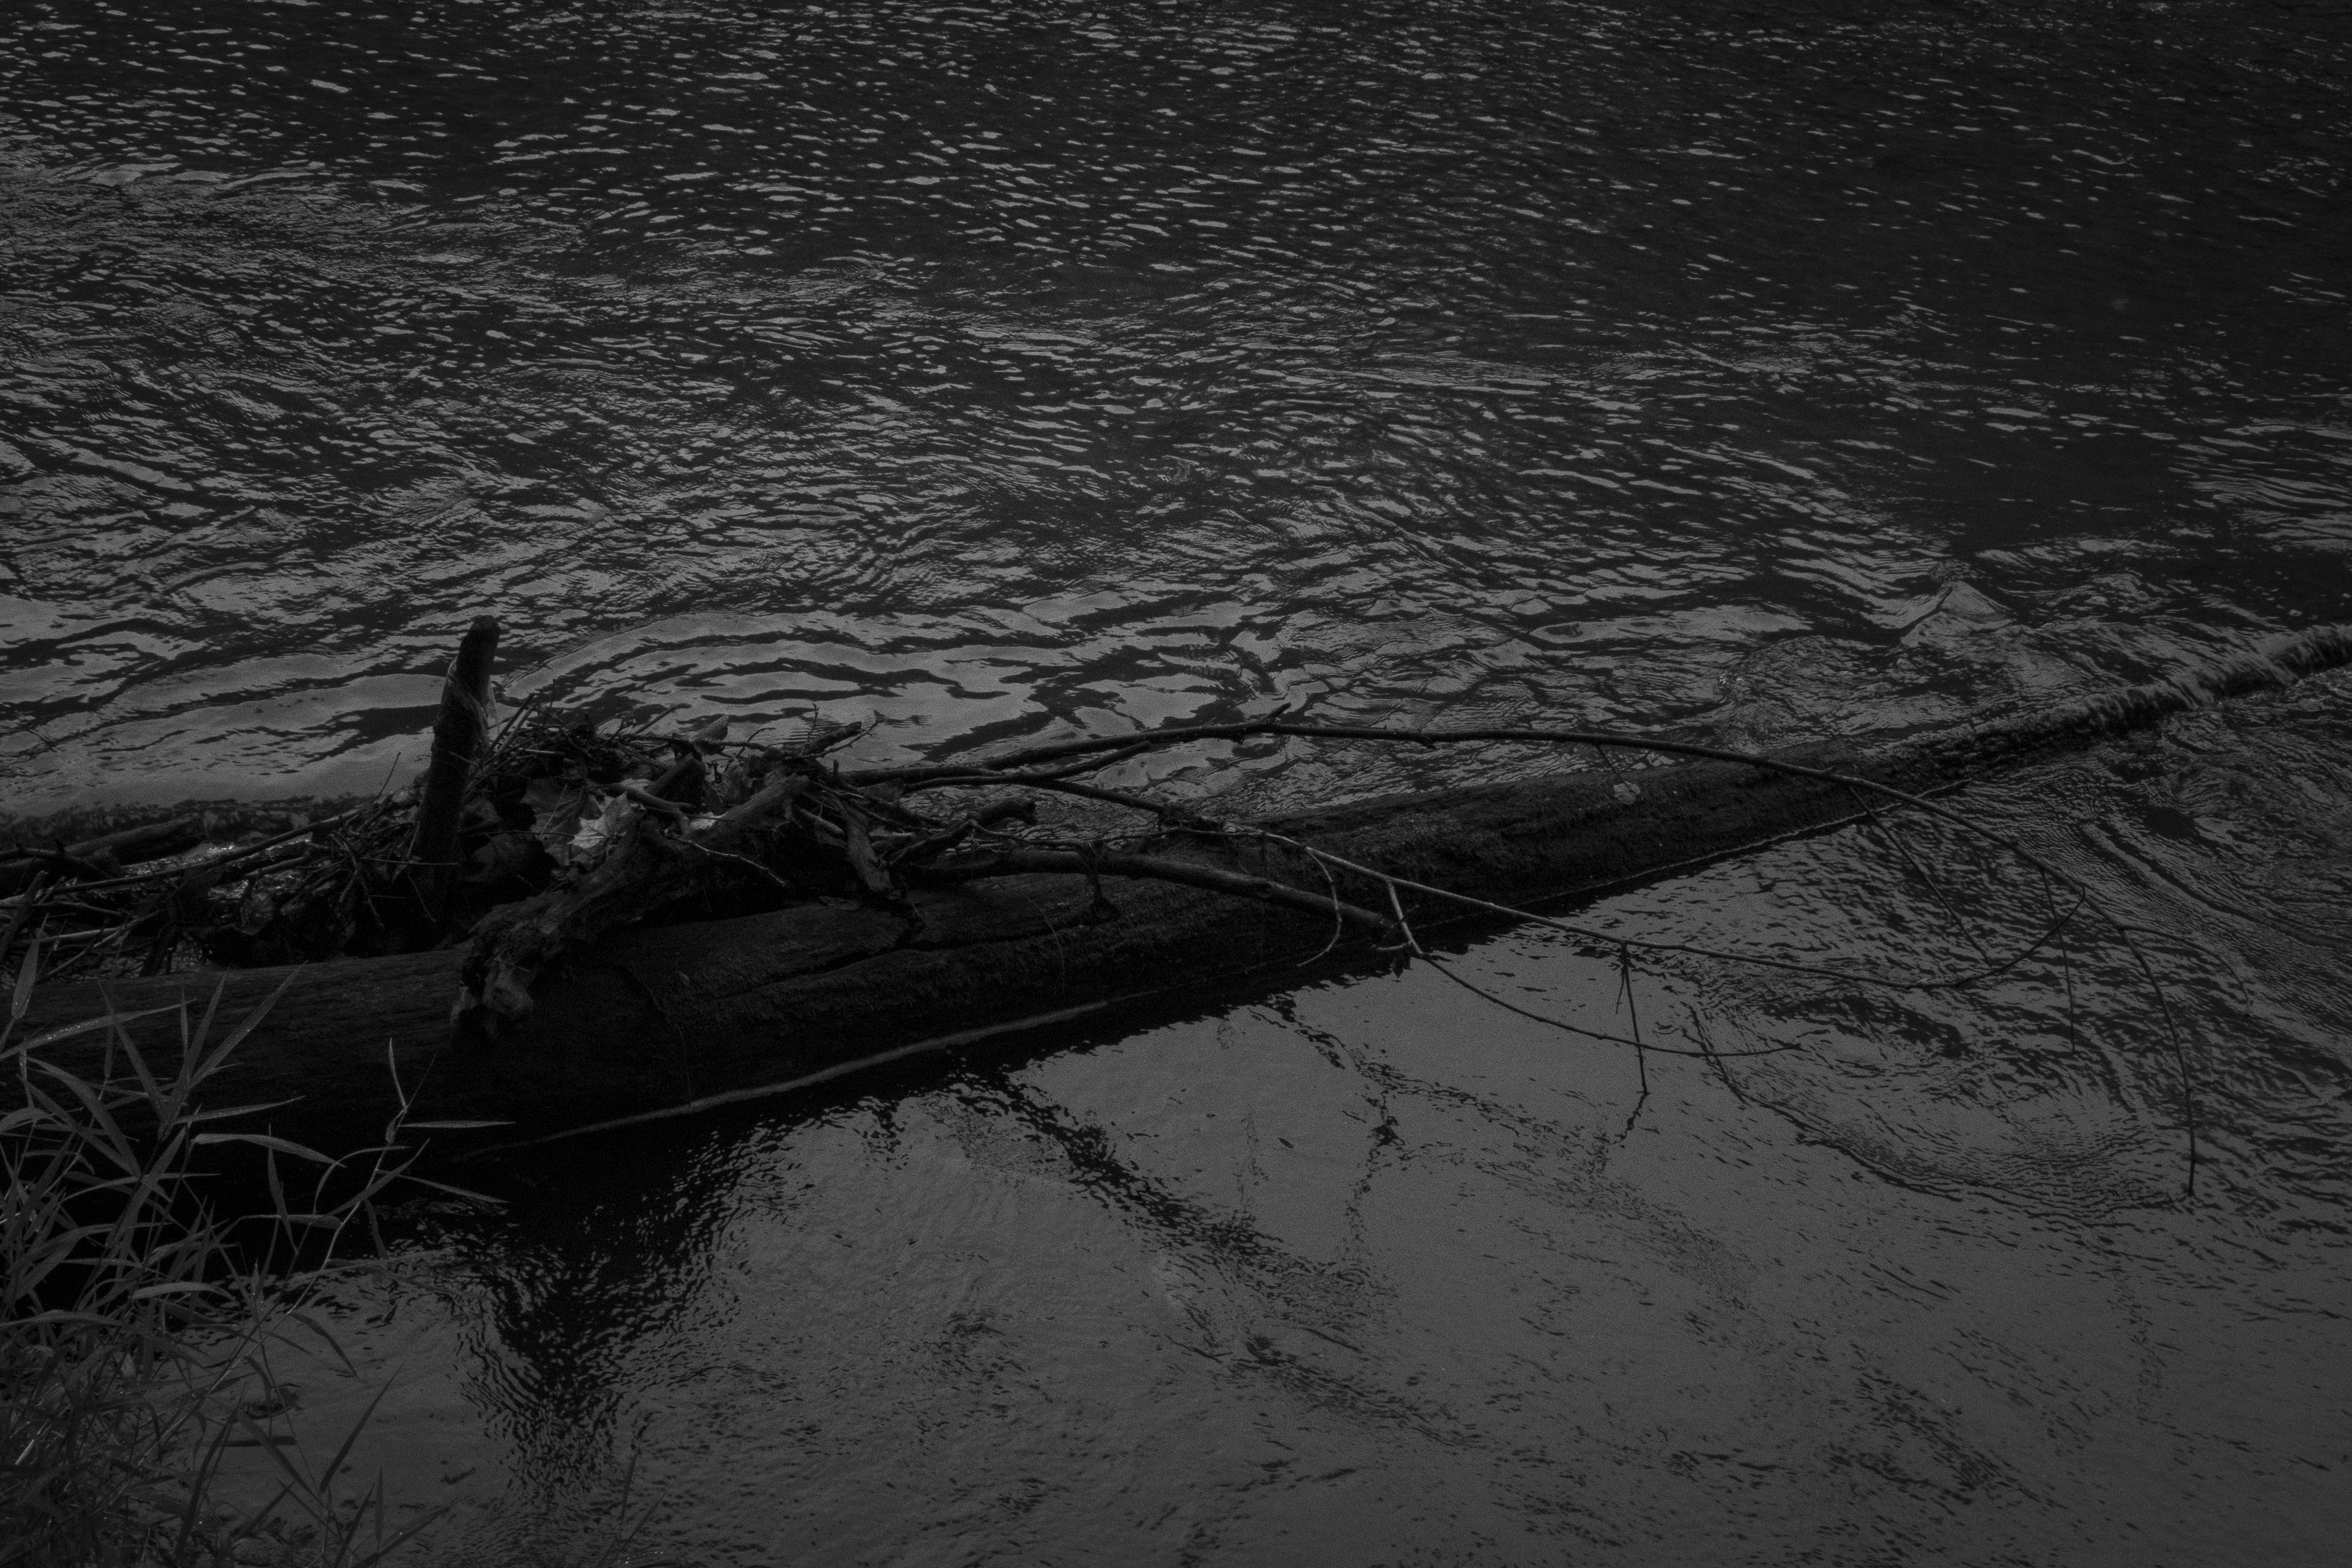 By The Dark Water IV